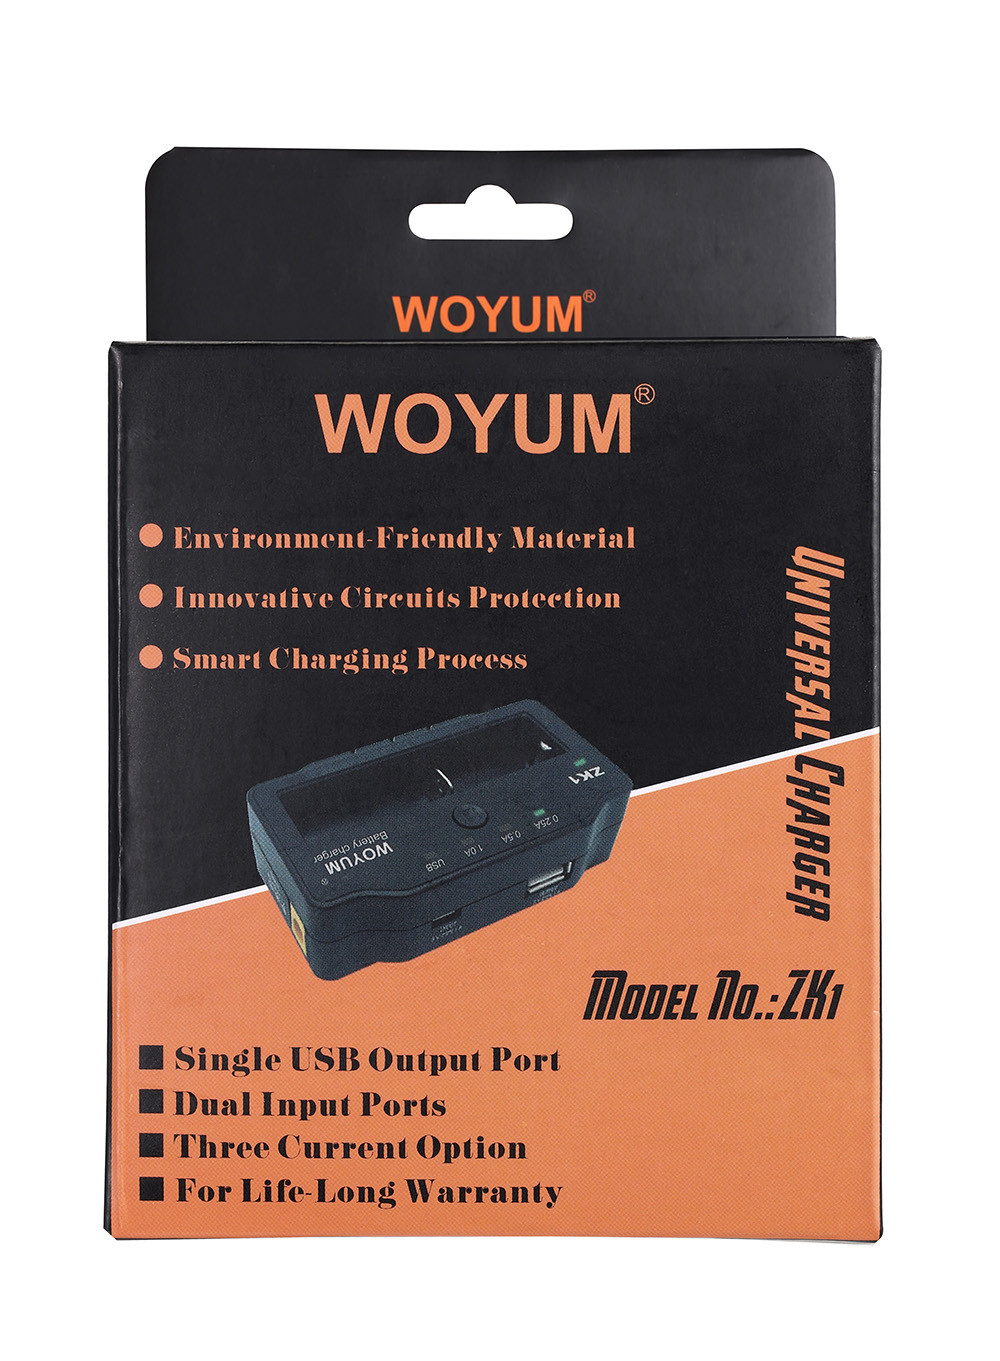 Woyum -Find Battery Recharger Battery Pack Charger From Woyum Battery-6